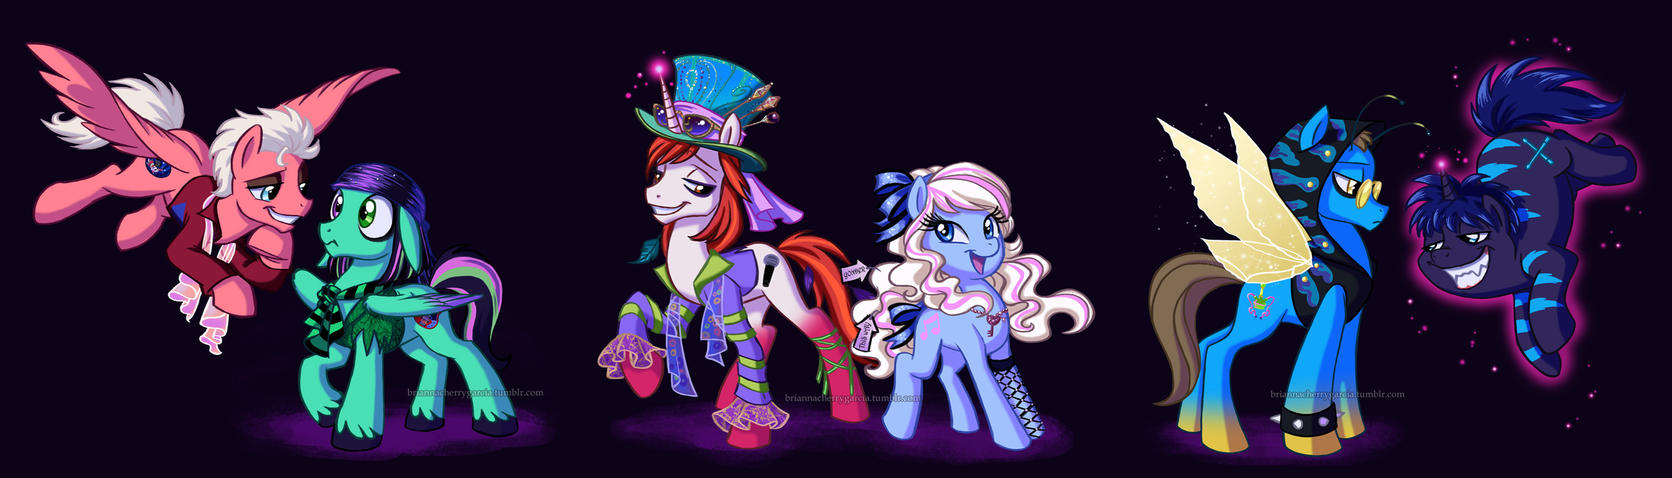 Mad T Ponies by briannacherrygarcia